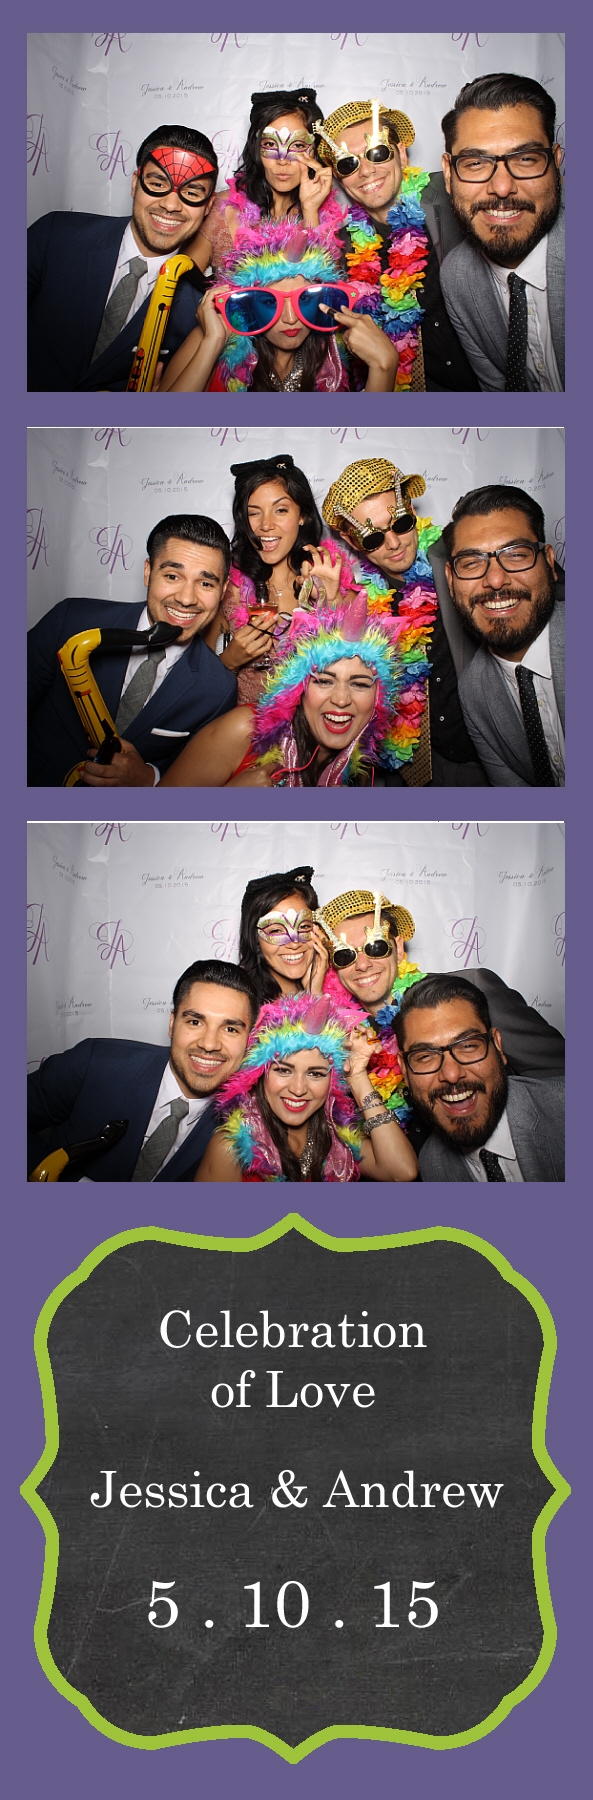 Cheers To You Photo Booth Rentals | Huntington Beach, CA | Template Design Examples